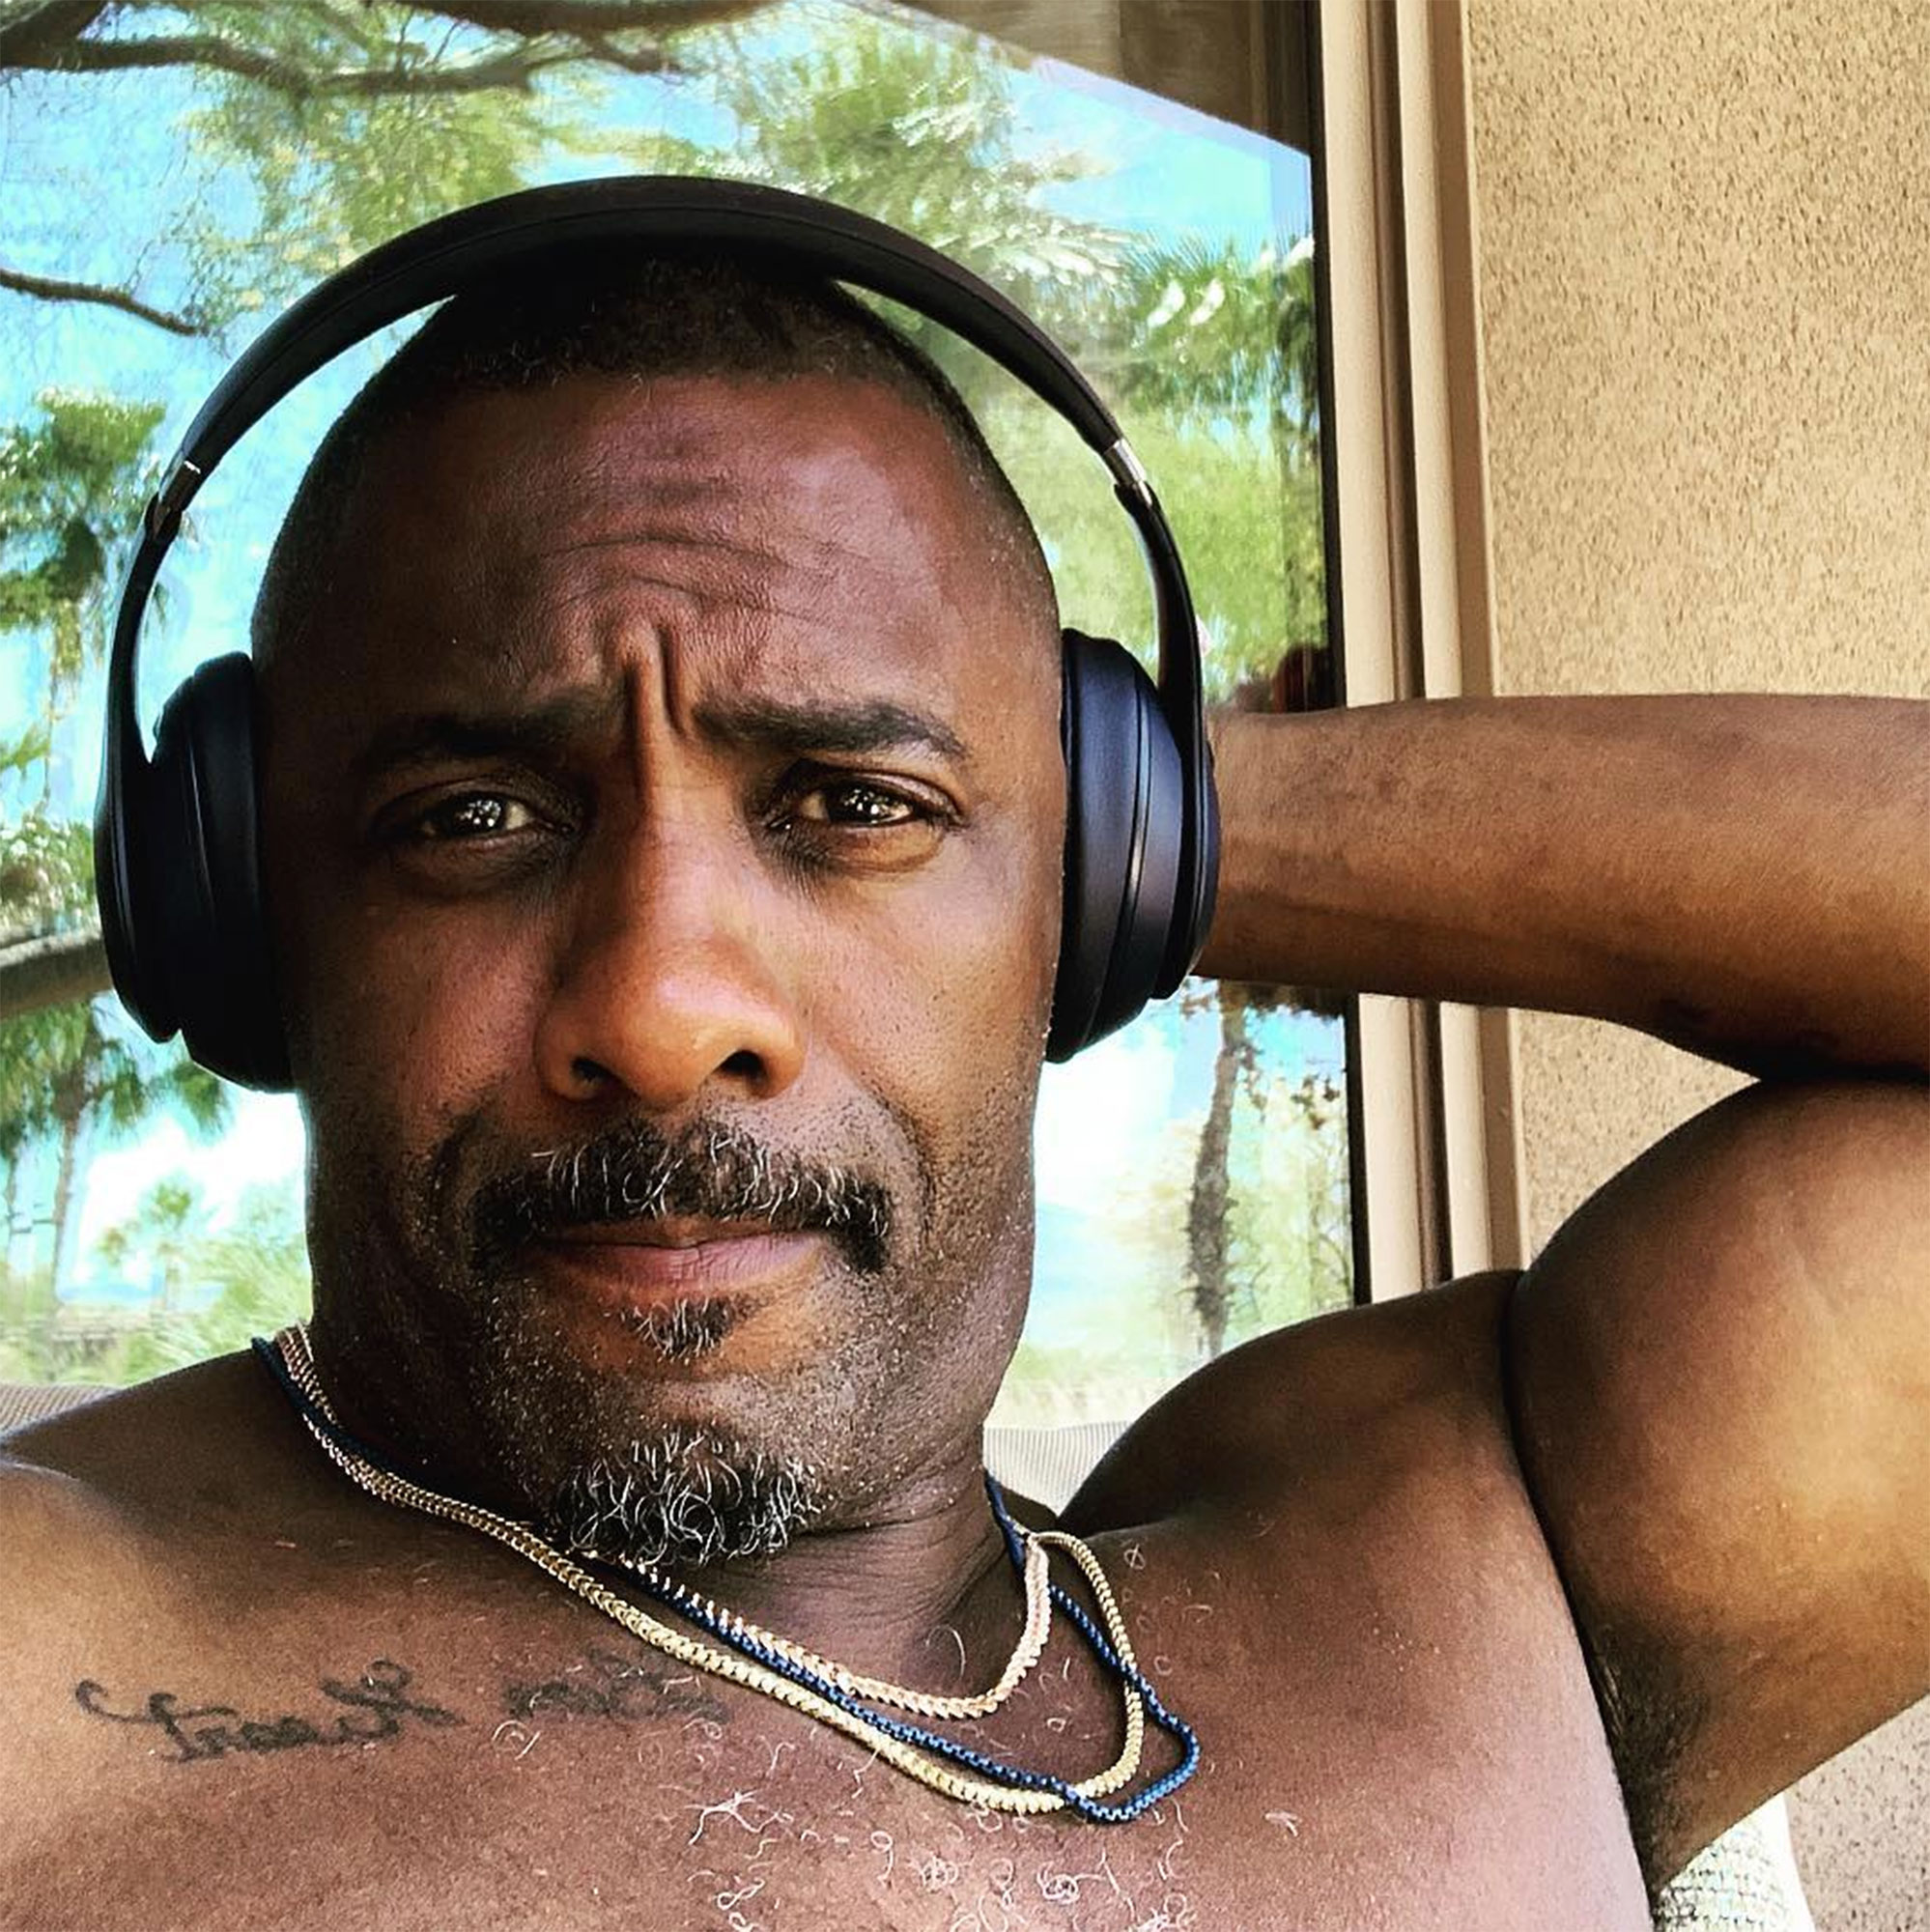 Idris Elba coachella - The Avengers: Infinity War actor, who played a DJ set Saturday, took time out for a shirtless selfie .